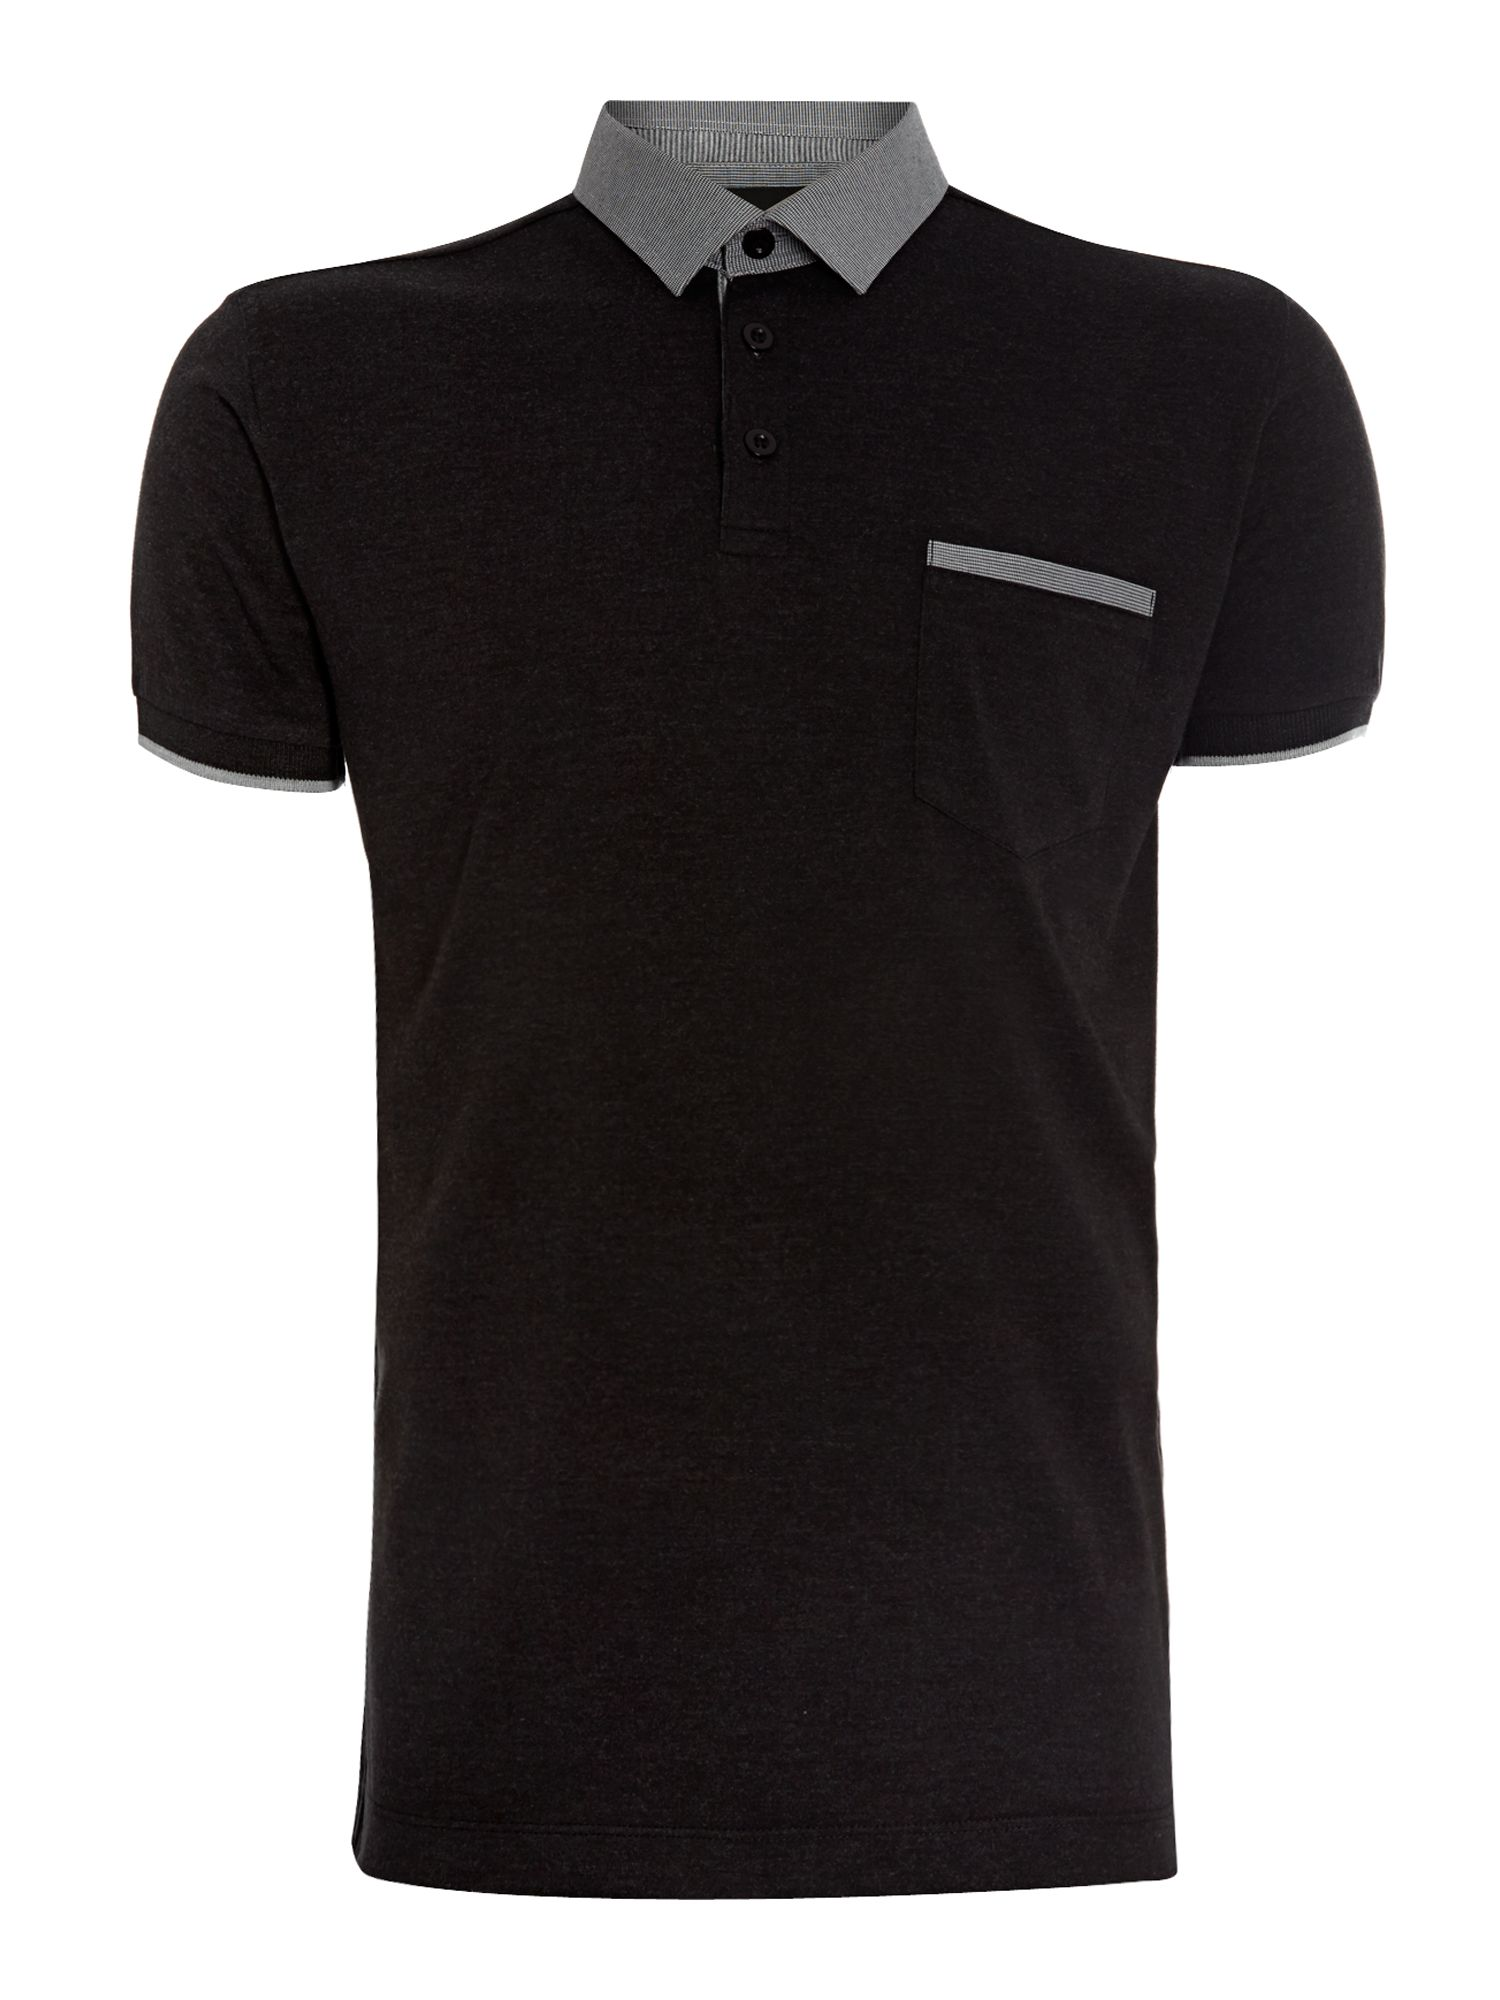 Plain regular fit polo shirt